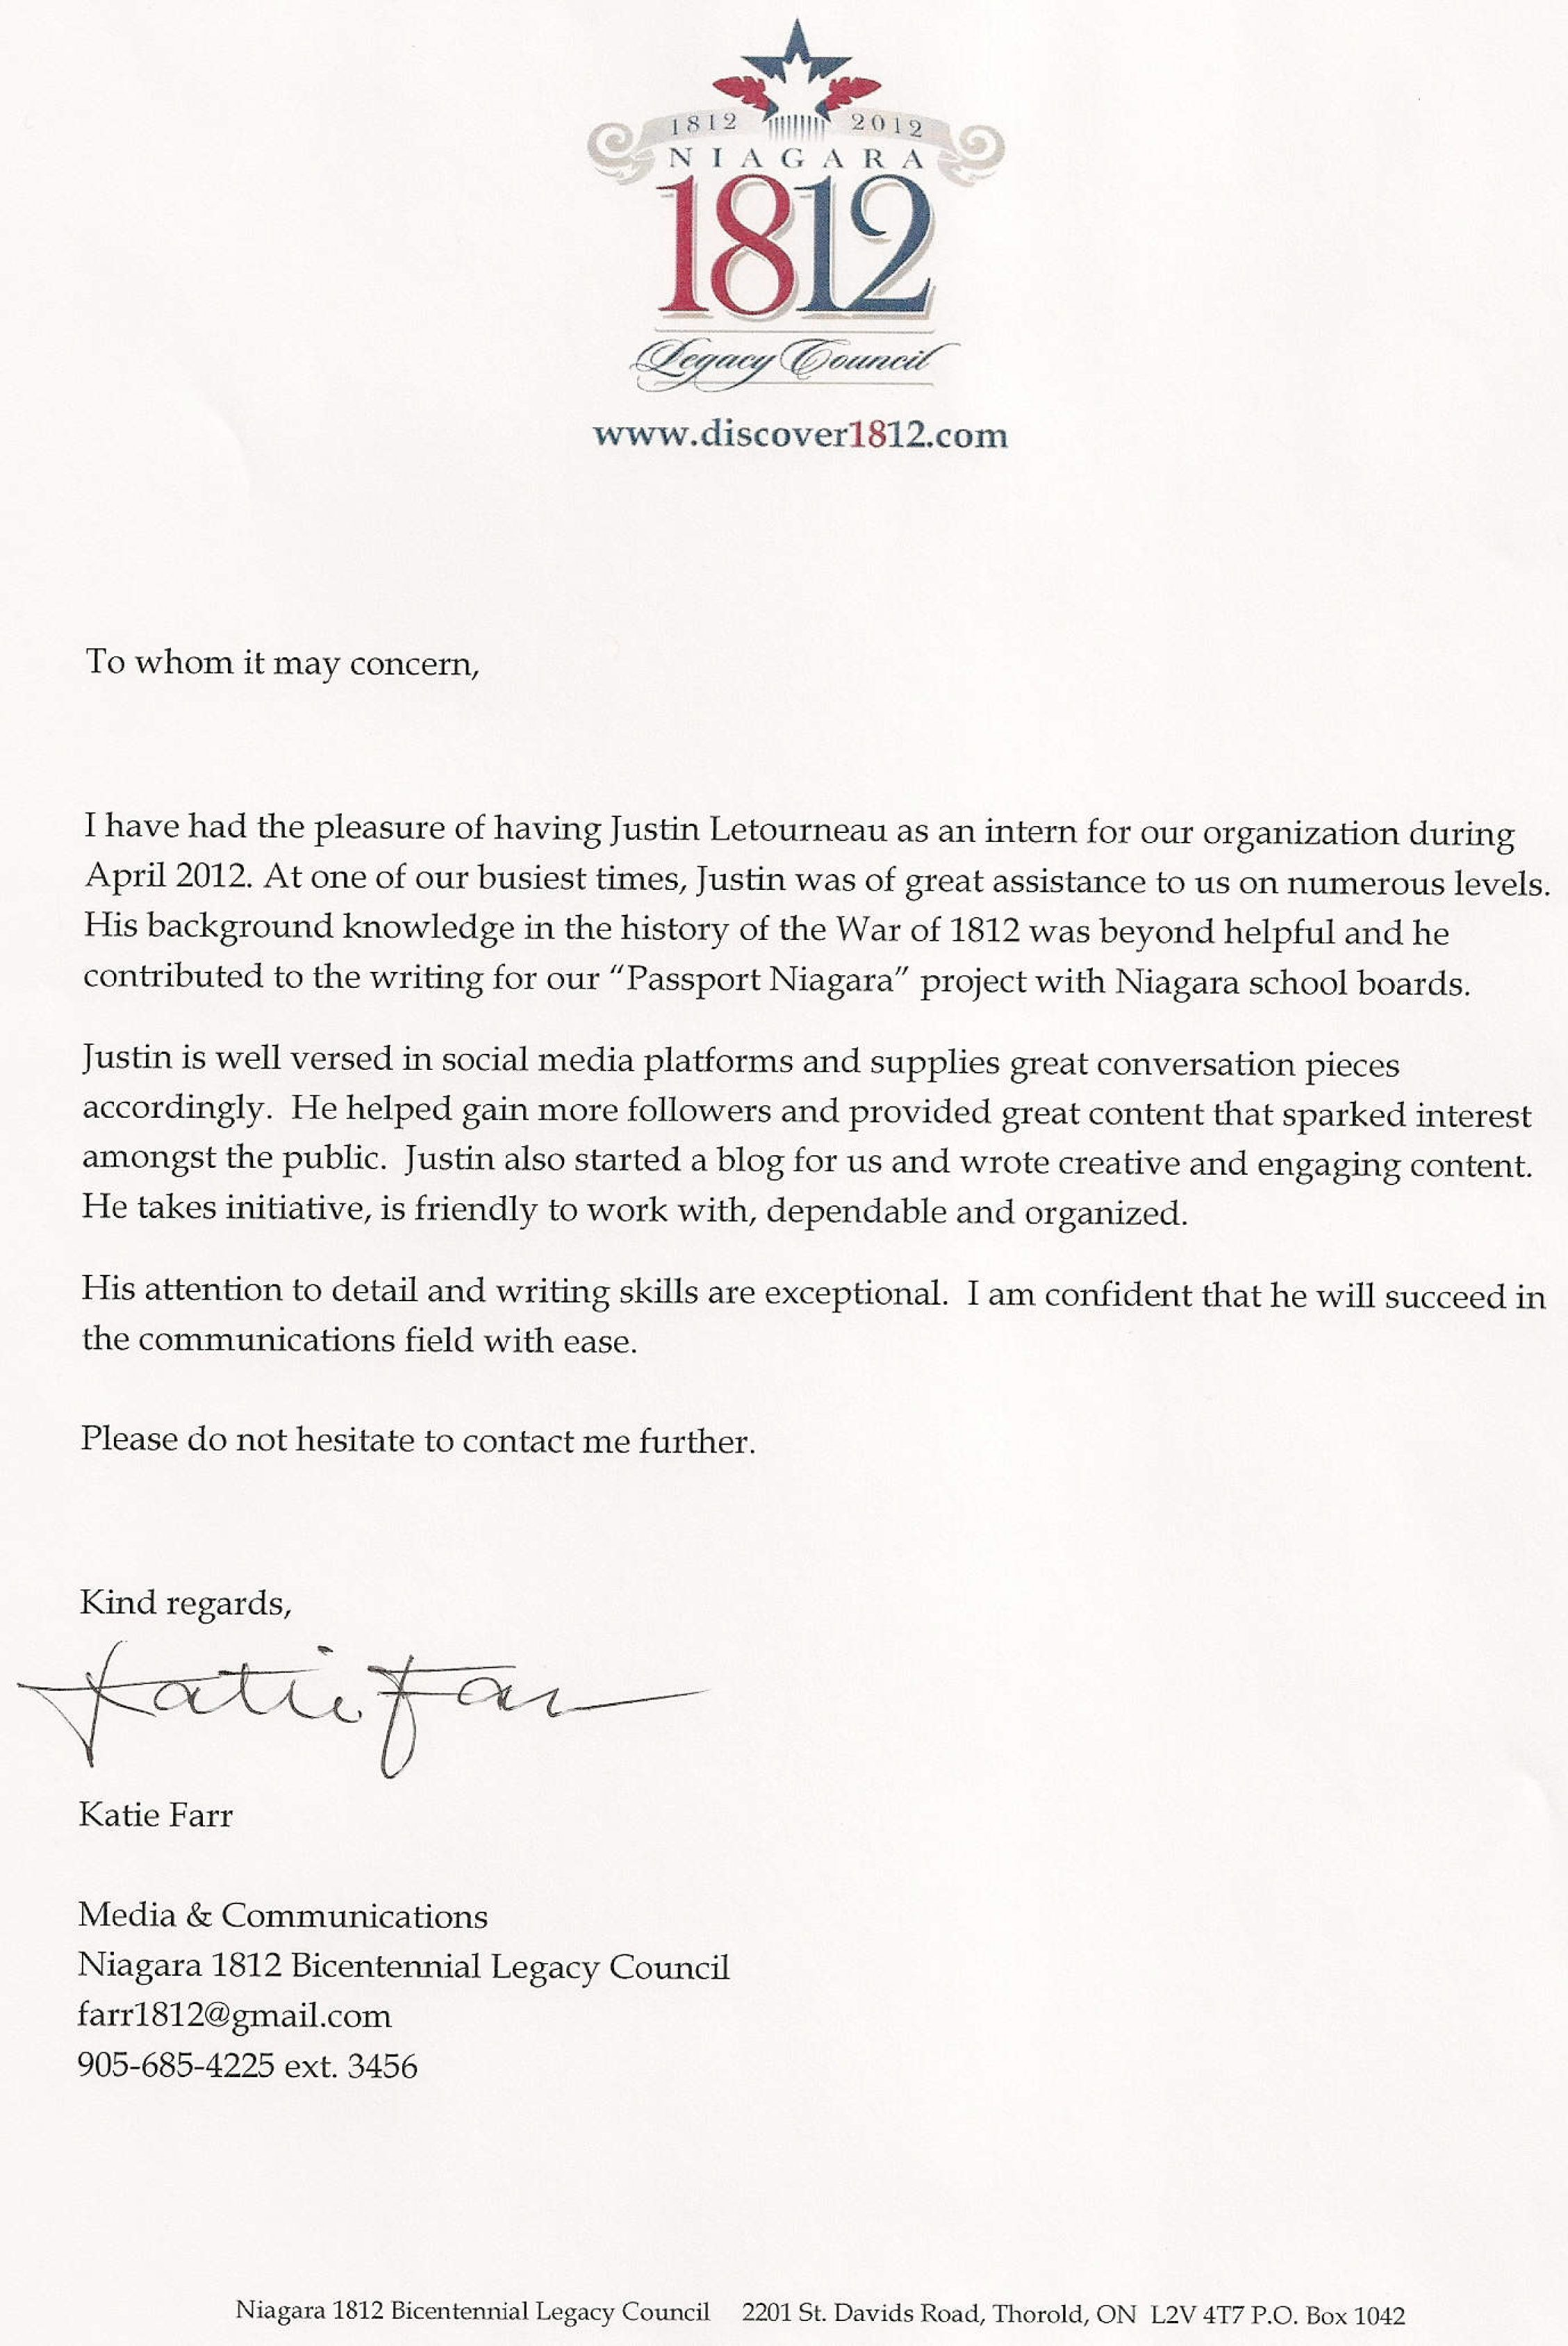 example of a formal letter of invitation